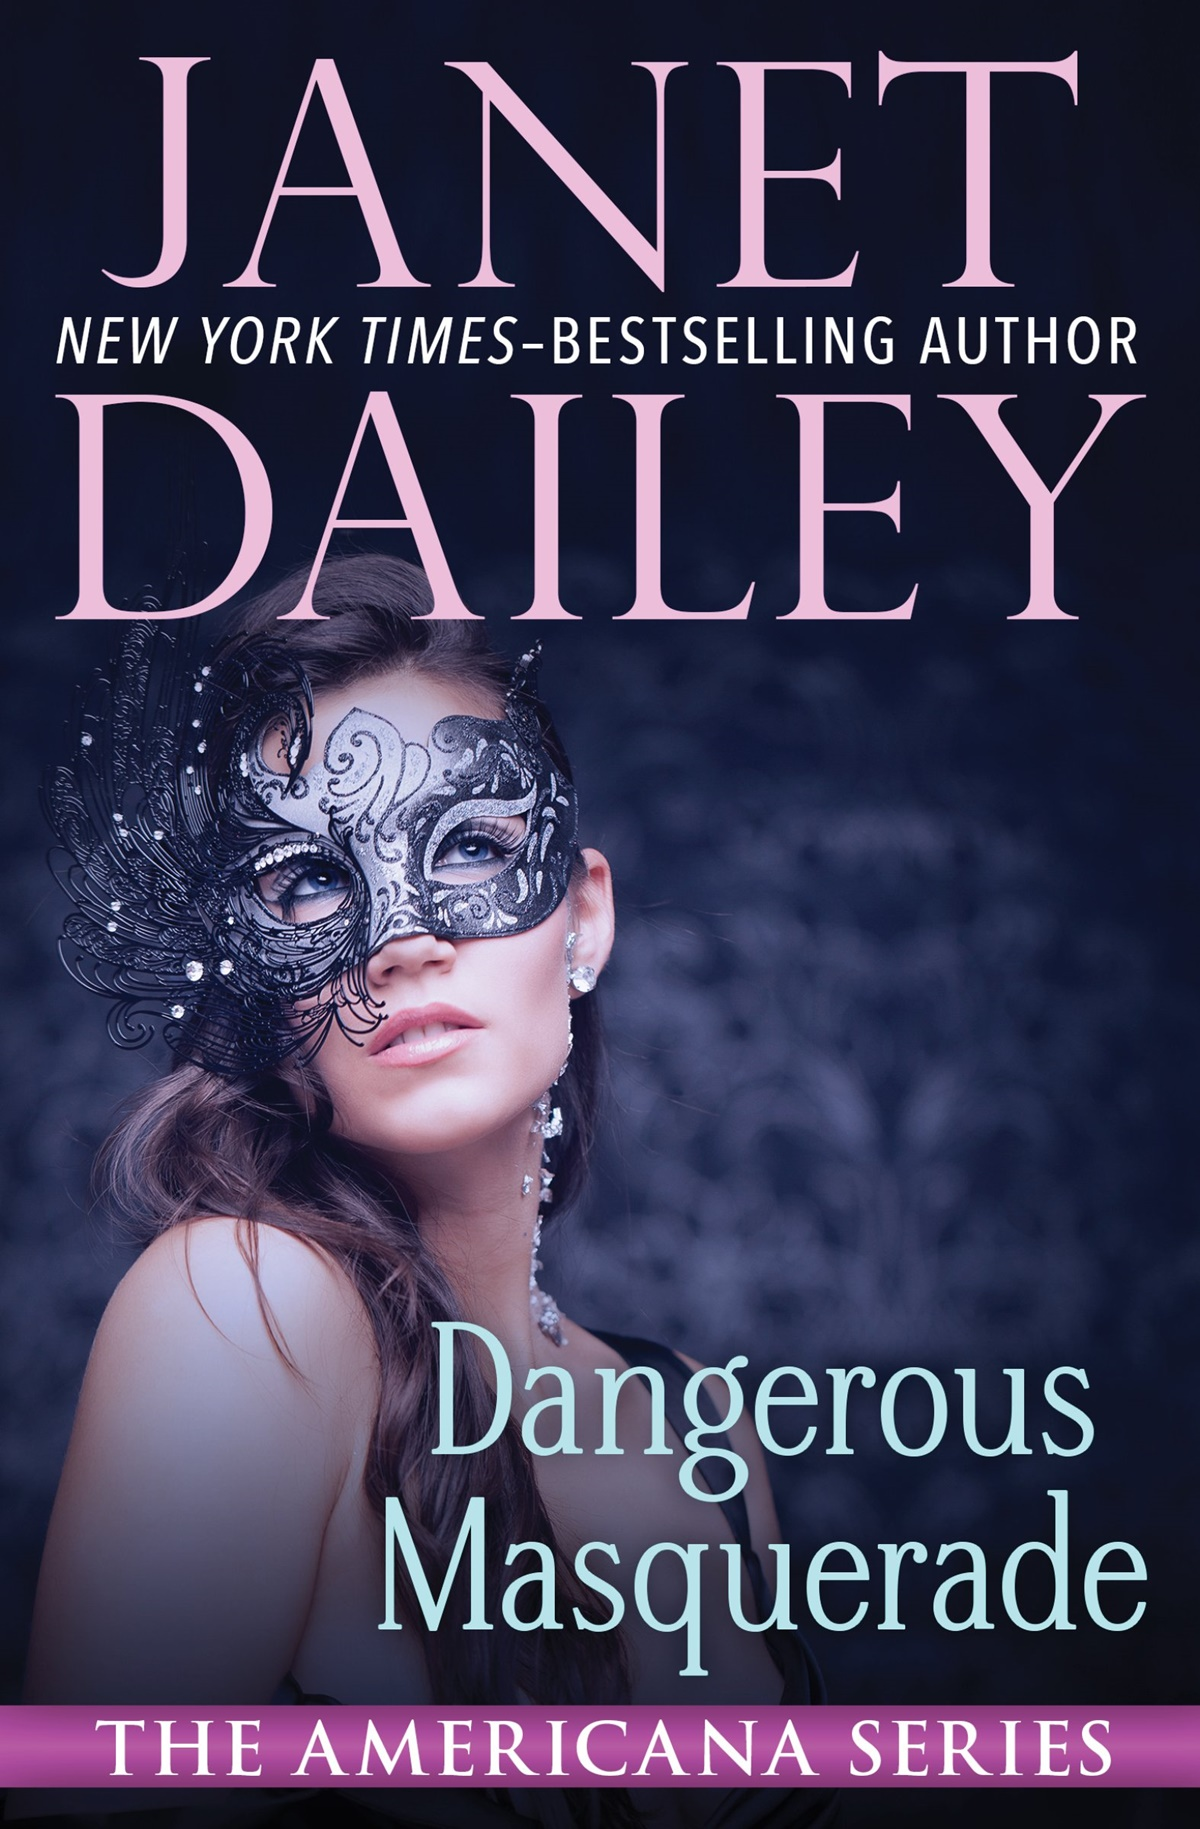 Janet Dailey Romance Novels, cover of Dangerous Masquerade by Janet Dailey, books